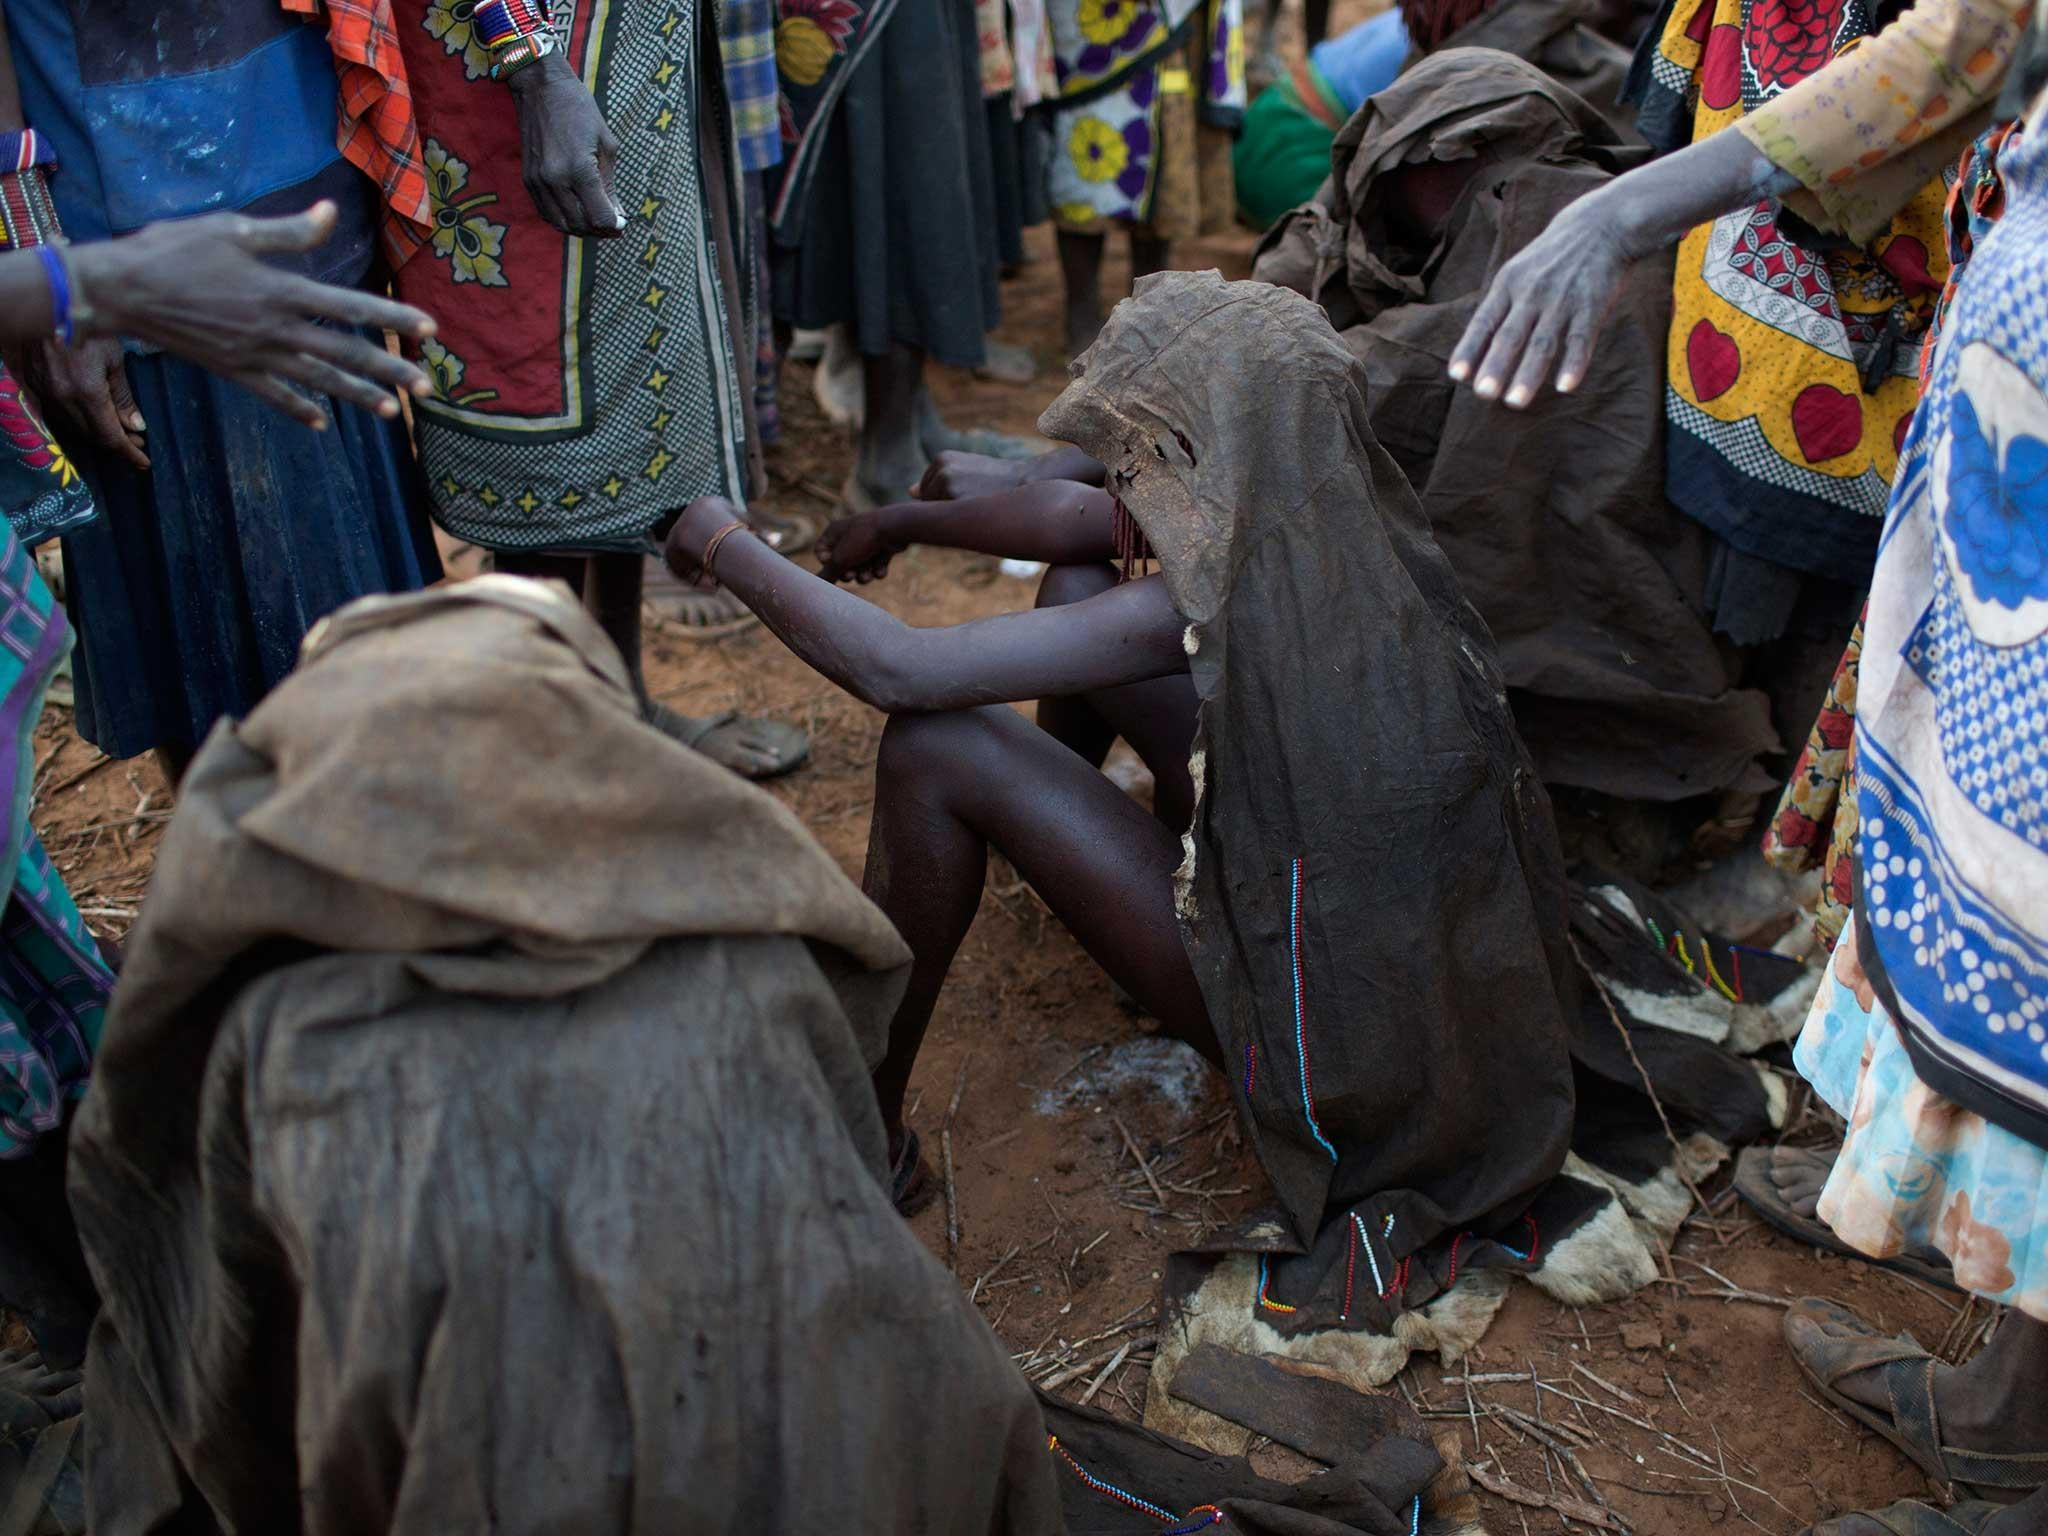 Man and woman charged over female genital mutilation of